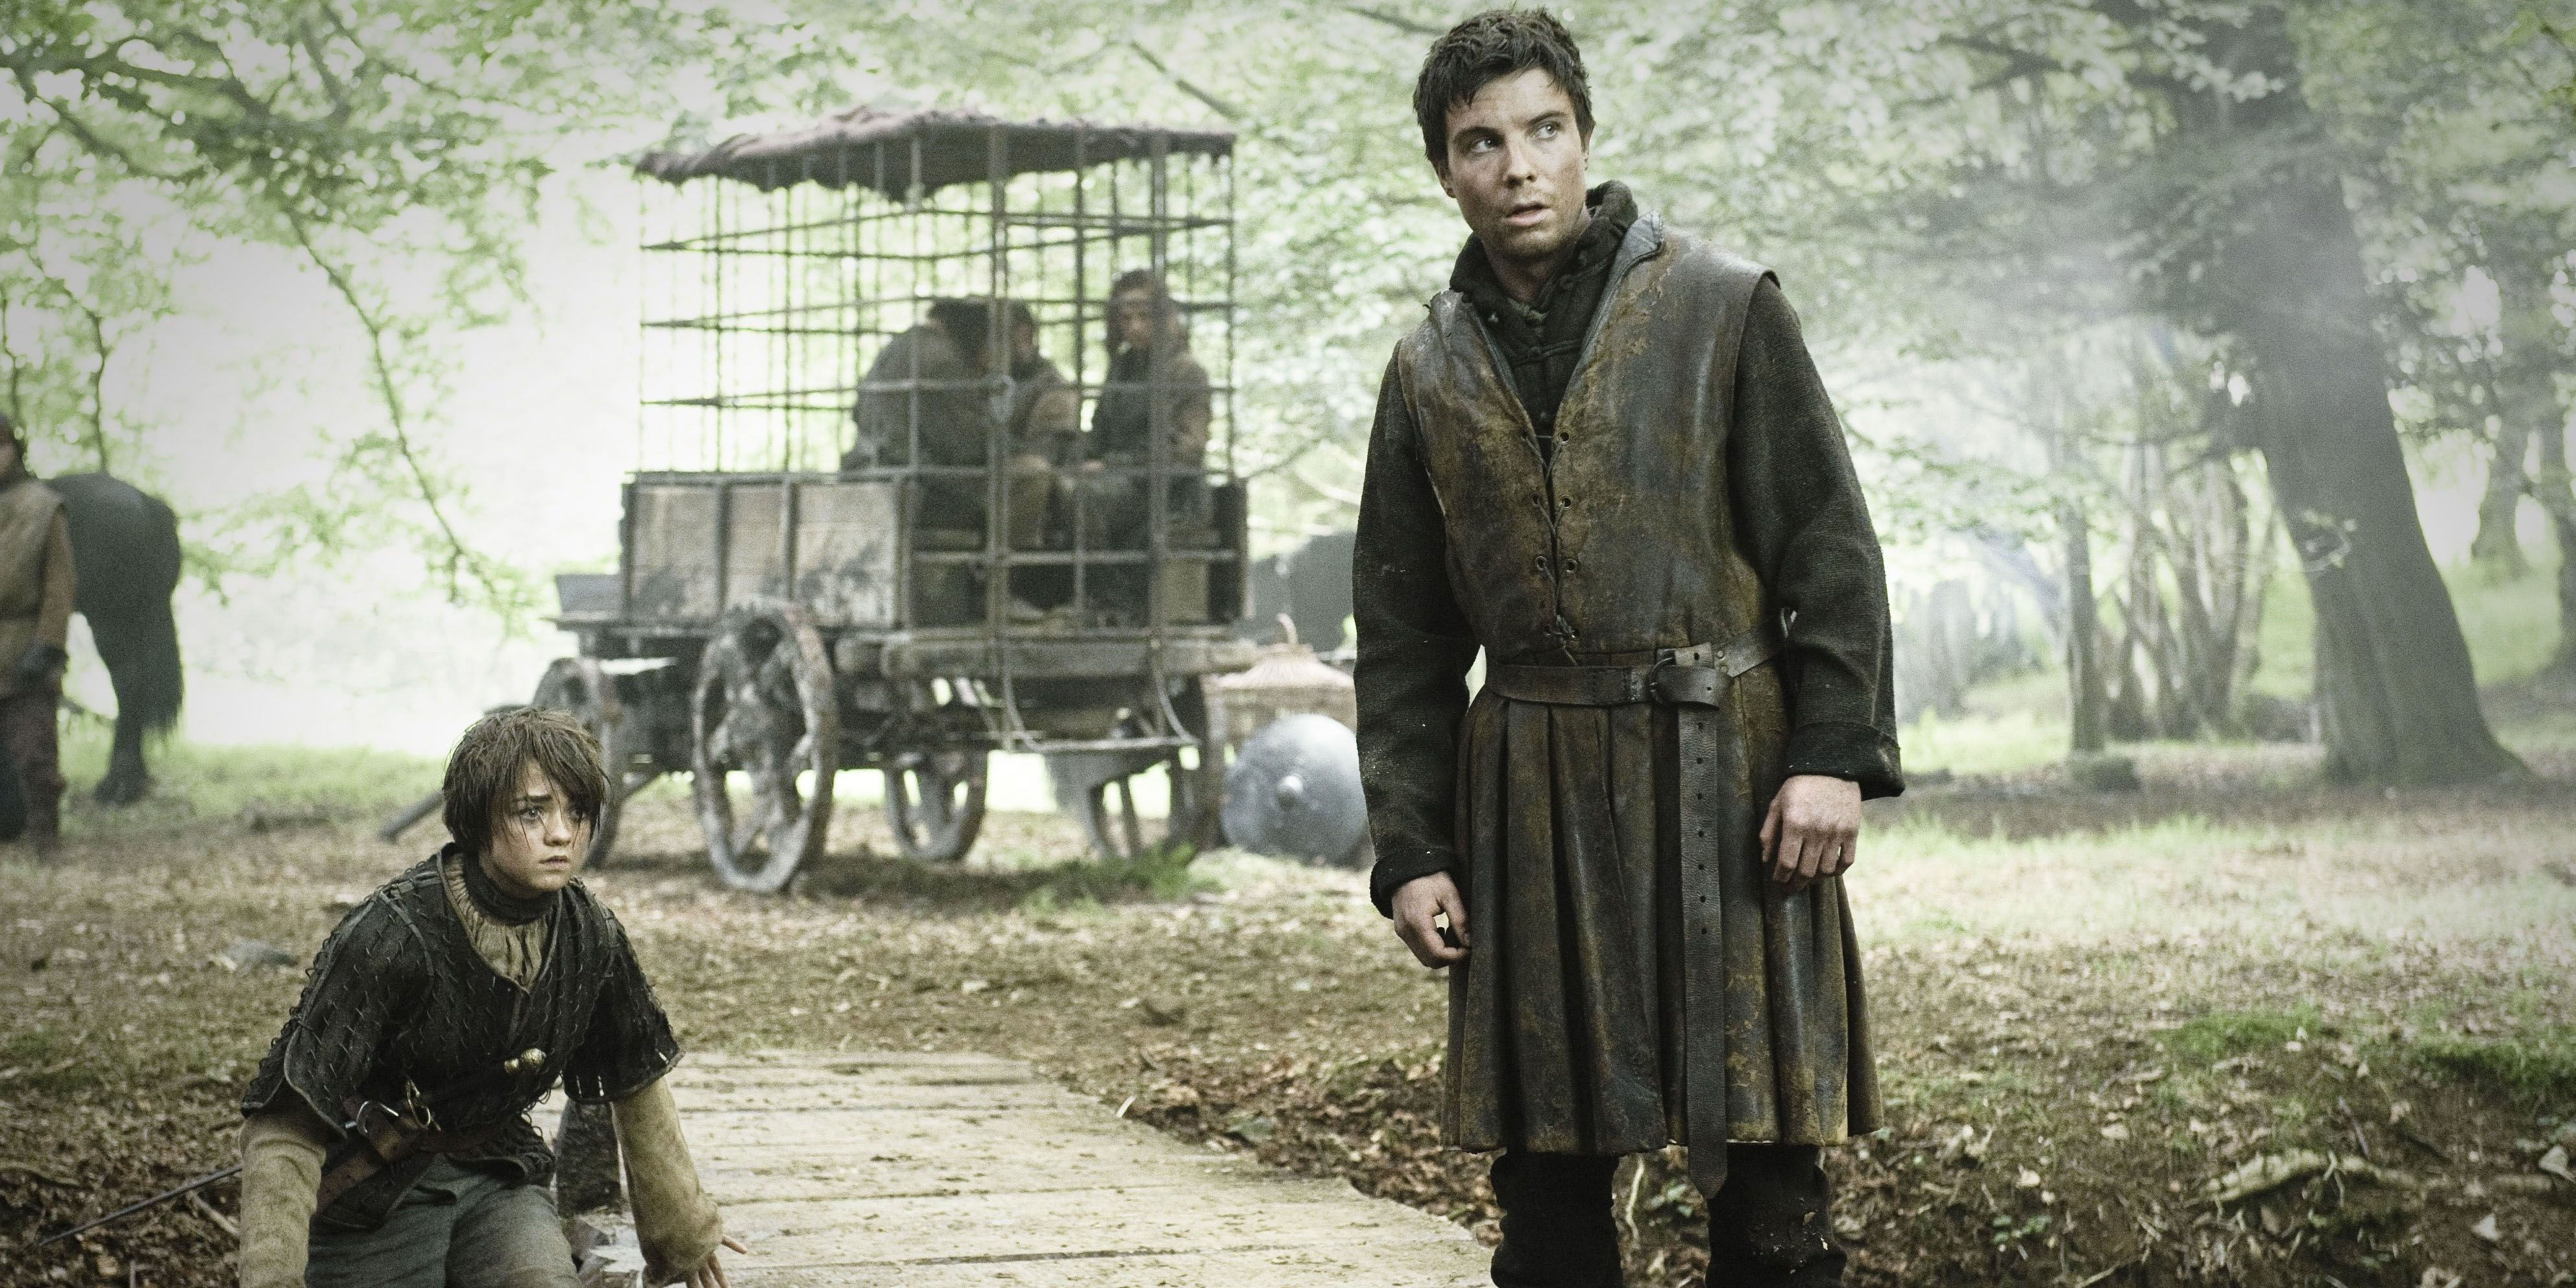 Is Gendry Coming Back For Game Of Thrones Season 7